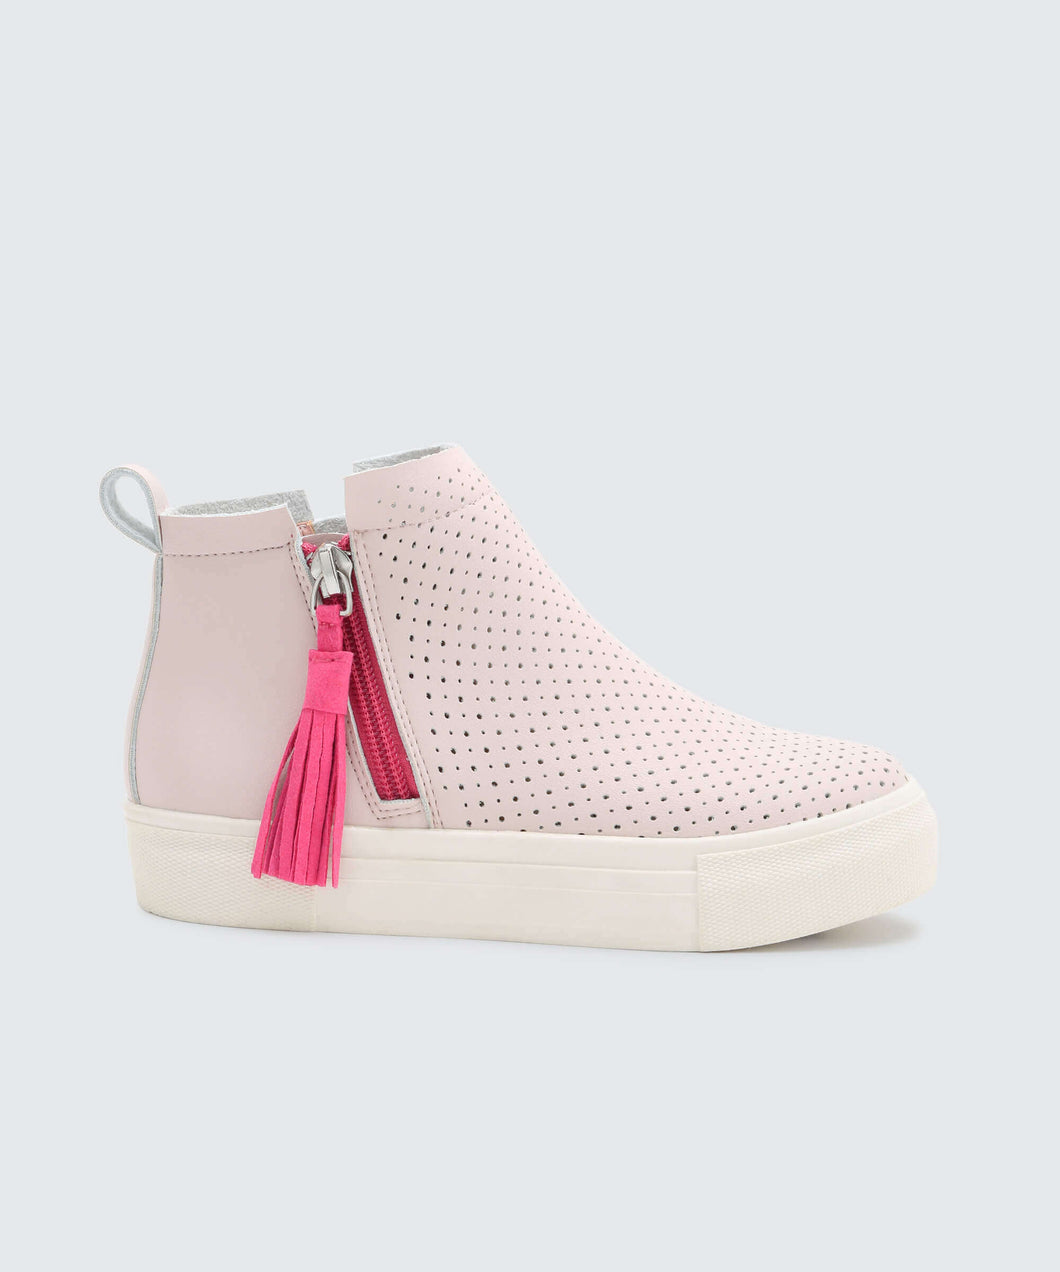 CRIS SNEAKERS IN BLUSH -   Dolce Vita